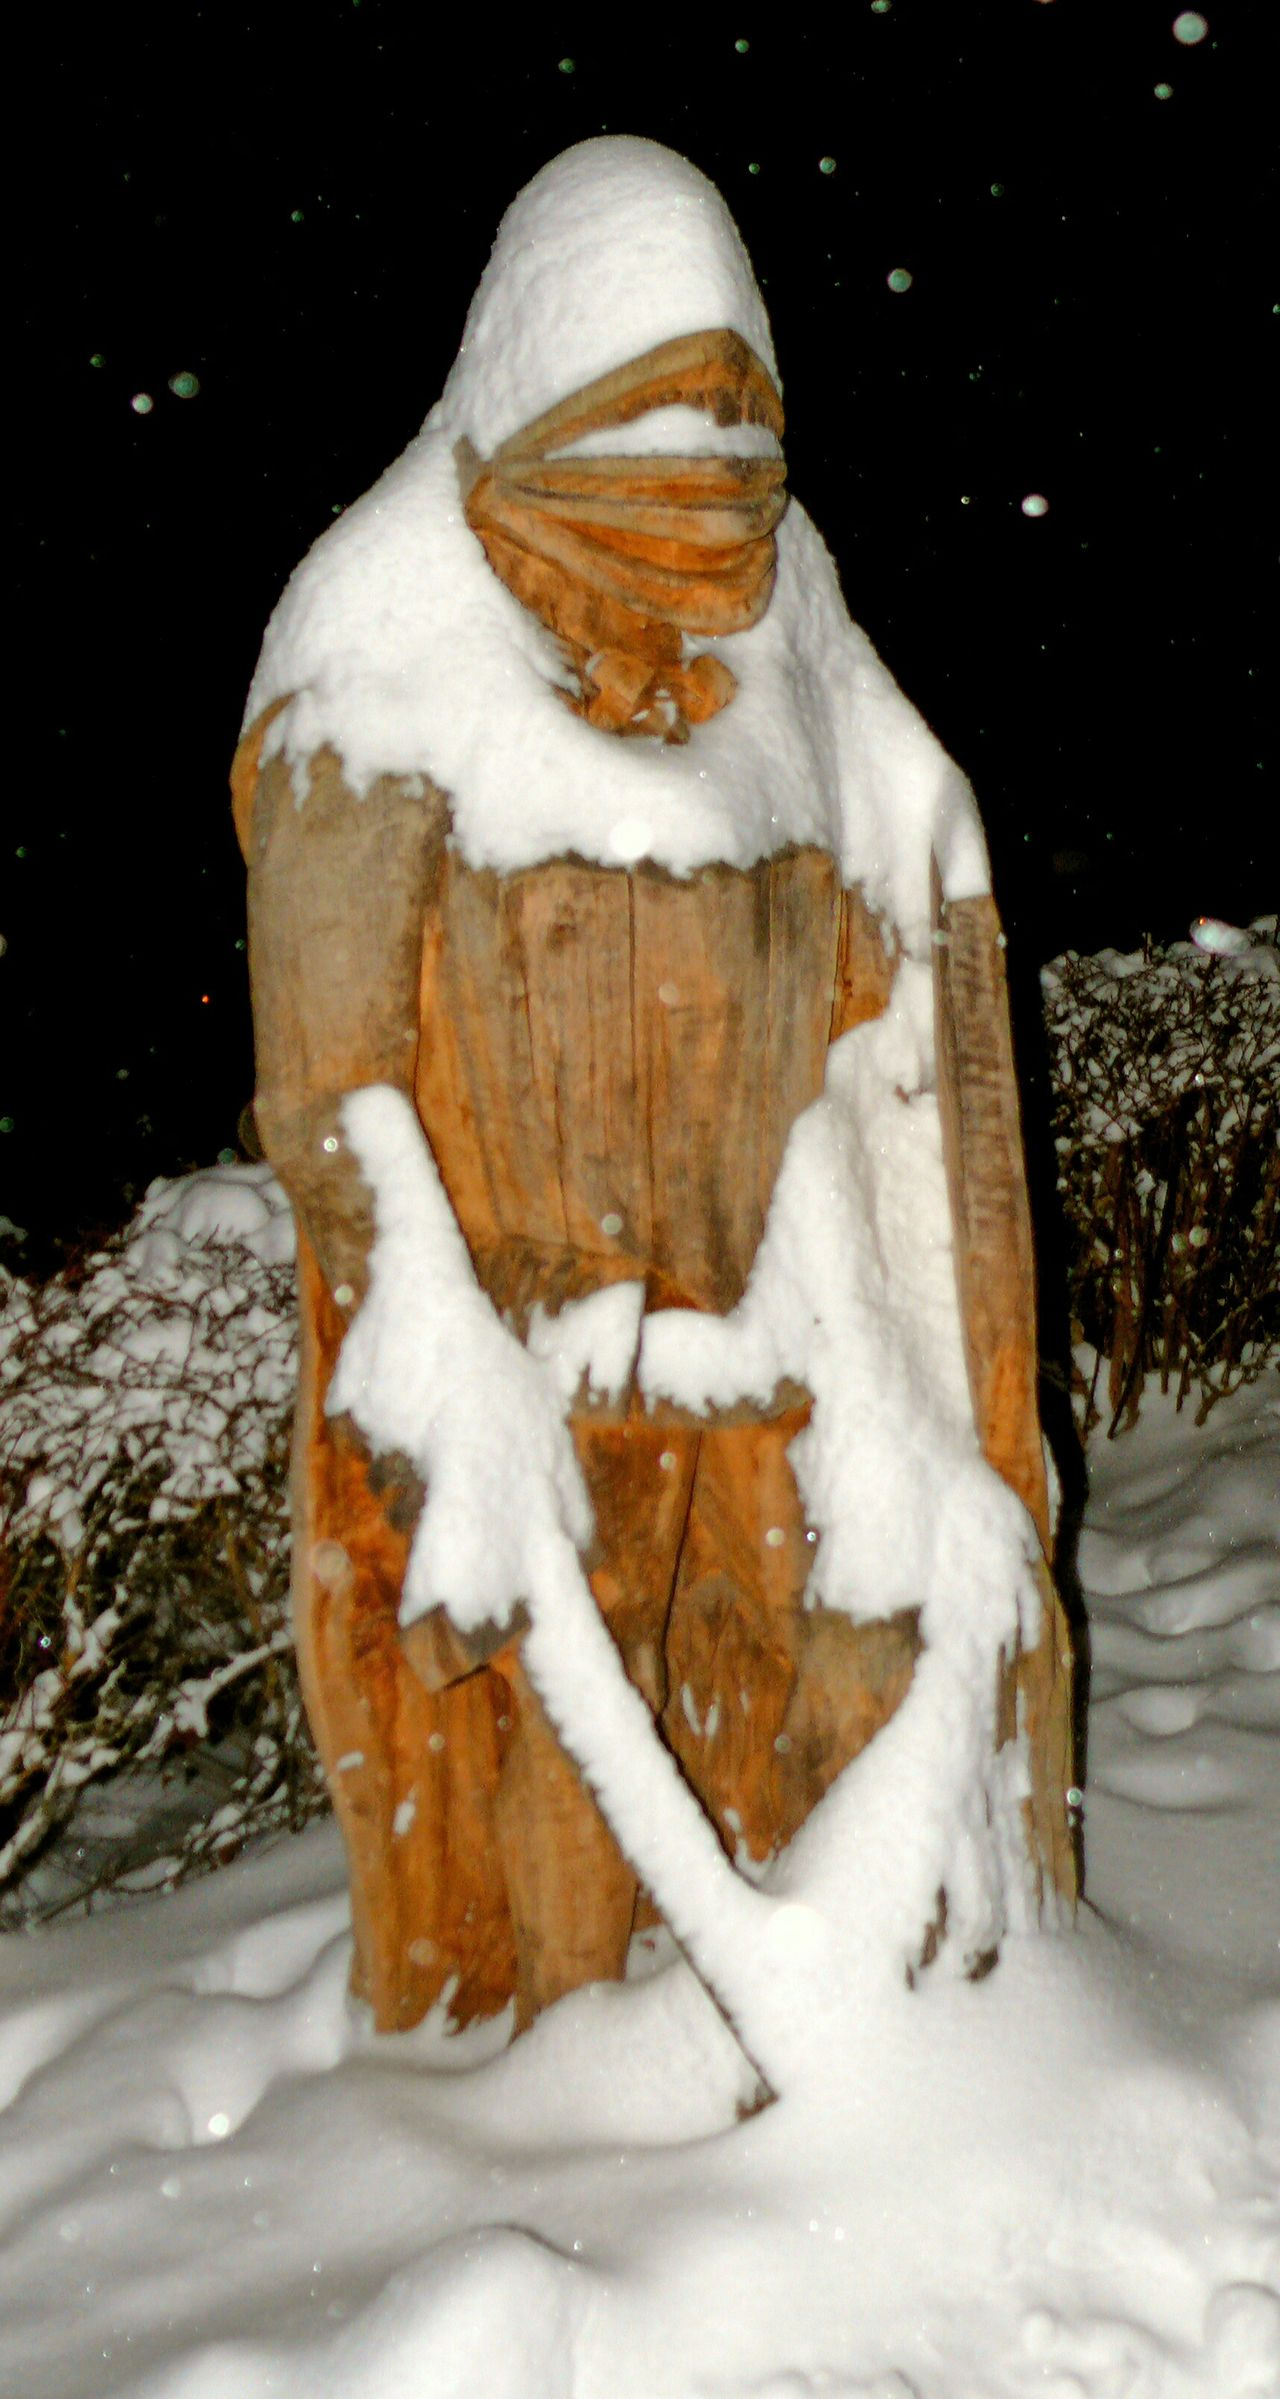 My Winter Favorites Guardian Knight  Schlosskeller Herrenberg Germany Winter Snow Copyright@photoji'nic